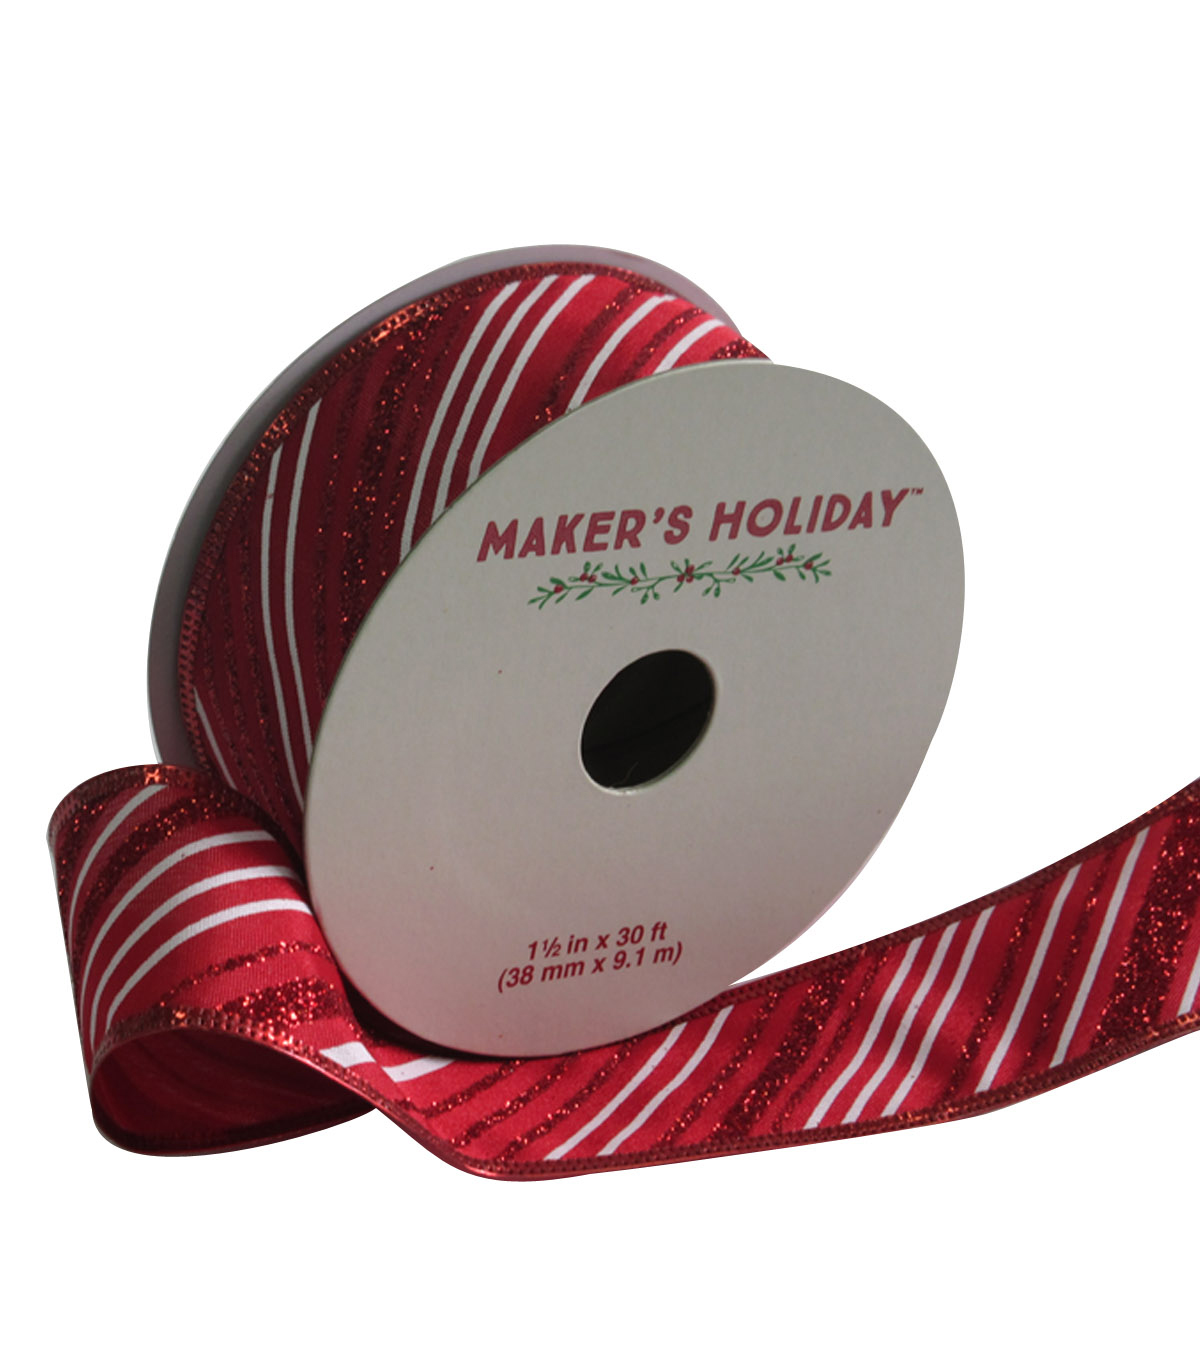 Maker's Holiday Twill Ribbon With Glitter 1.5''x30'-Red & White